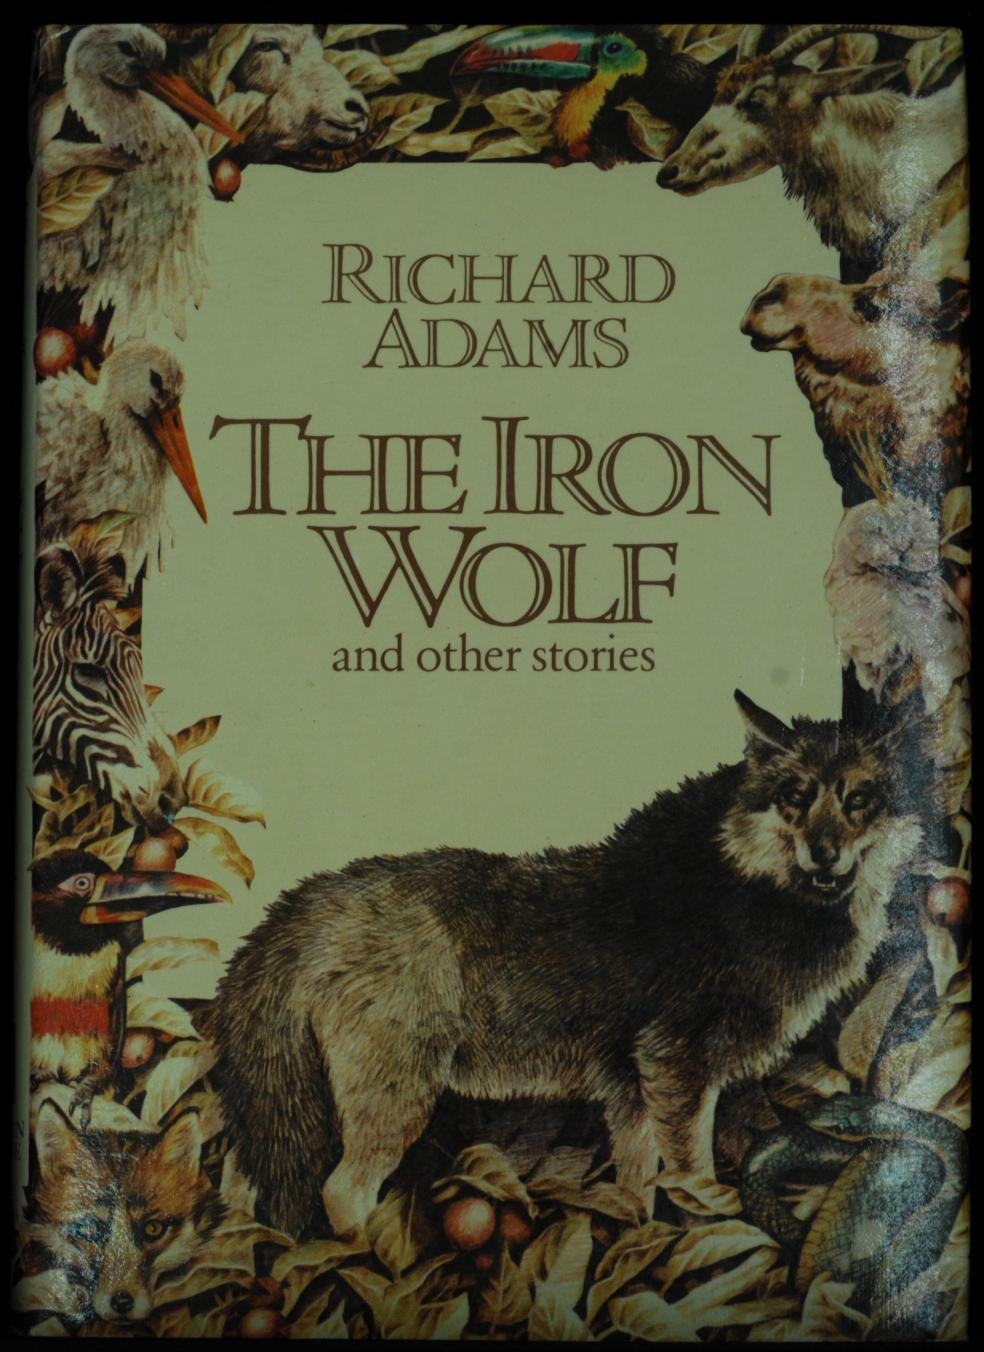 The_Iron_Wolf_And_Other_Stories_Adams_Richard_[Very_Good]_[Hardcover]